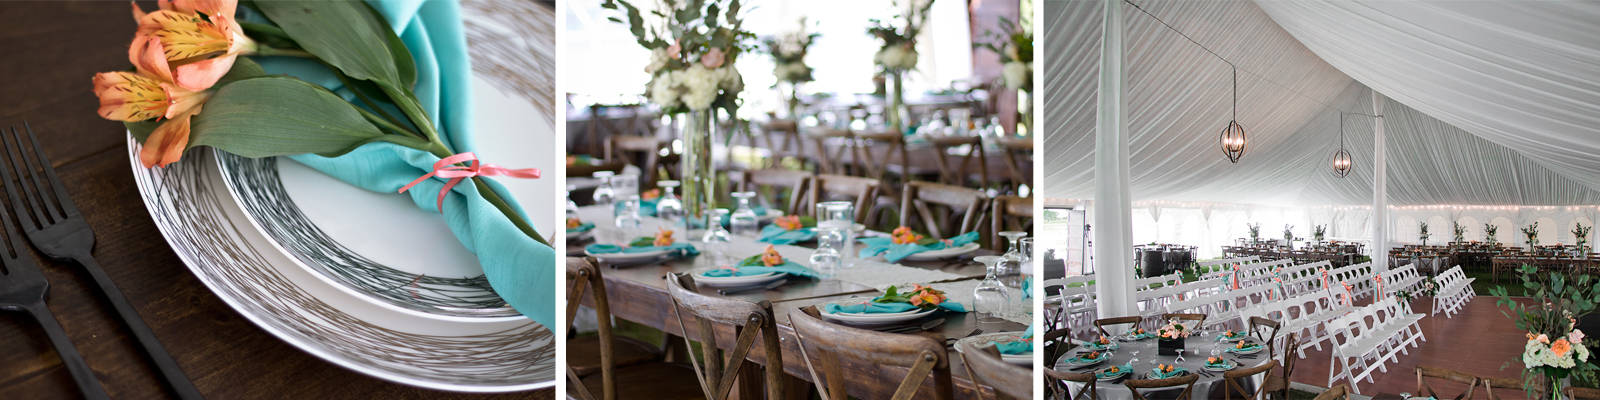 Tablecloth Rentals Michigan